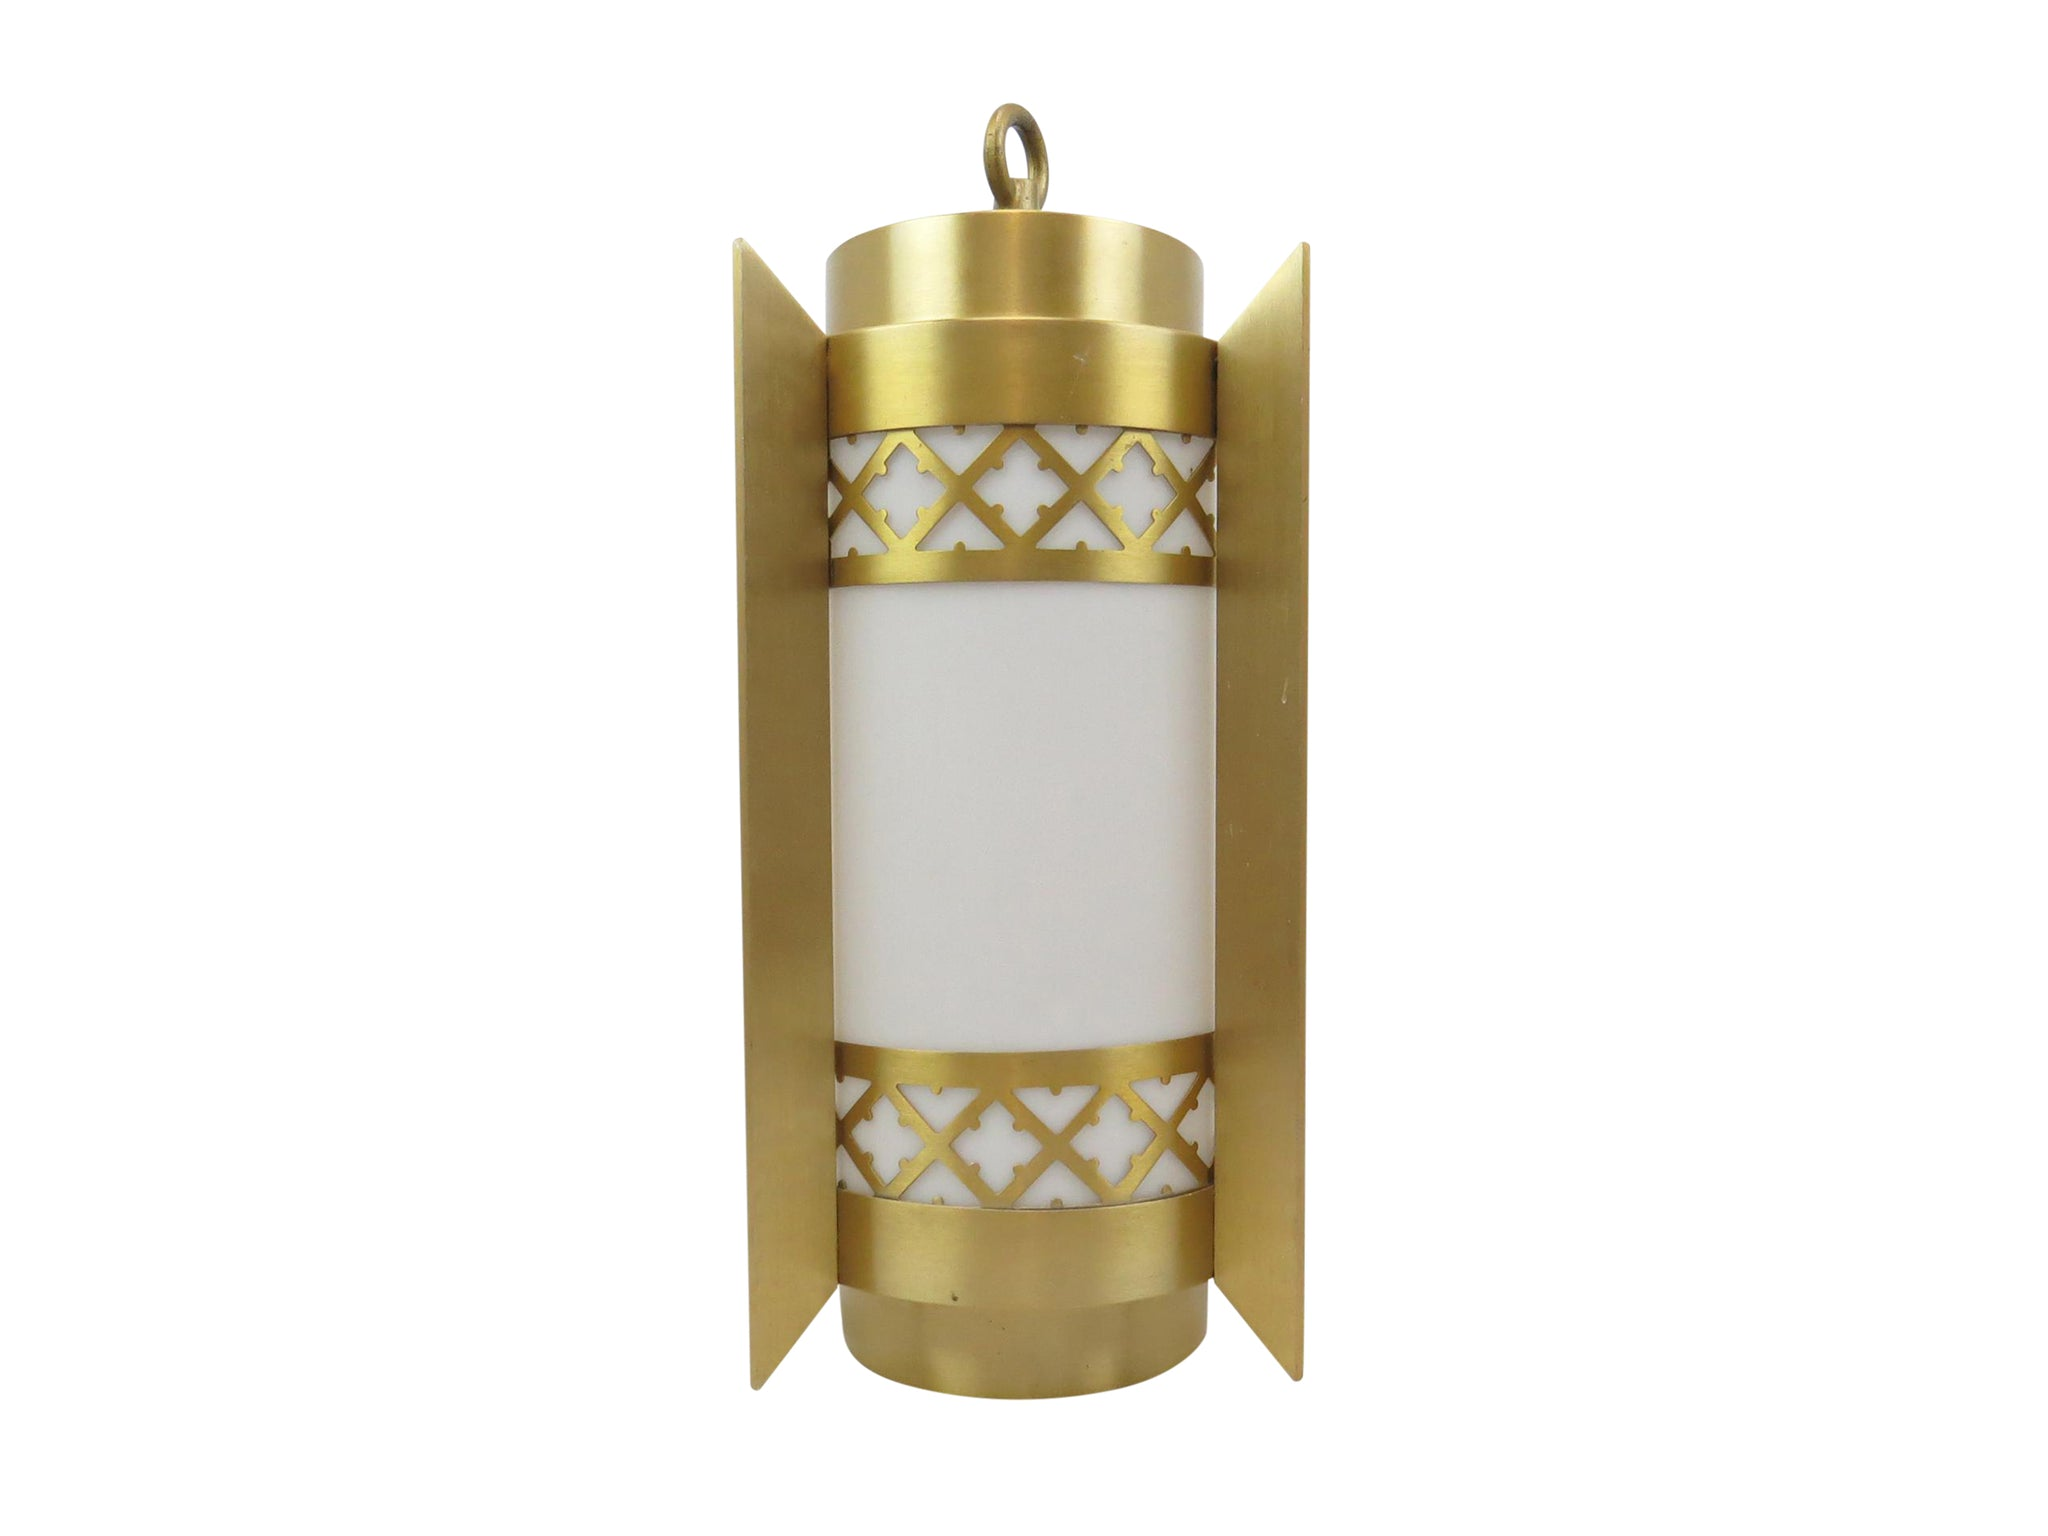 edgebrookhouse - Art Deco Style Brushed Brass and White Acrylic Hanging Pendant Light